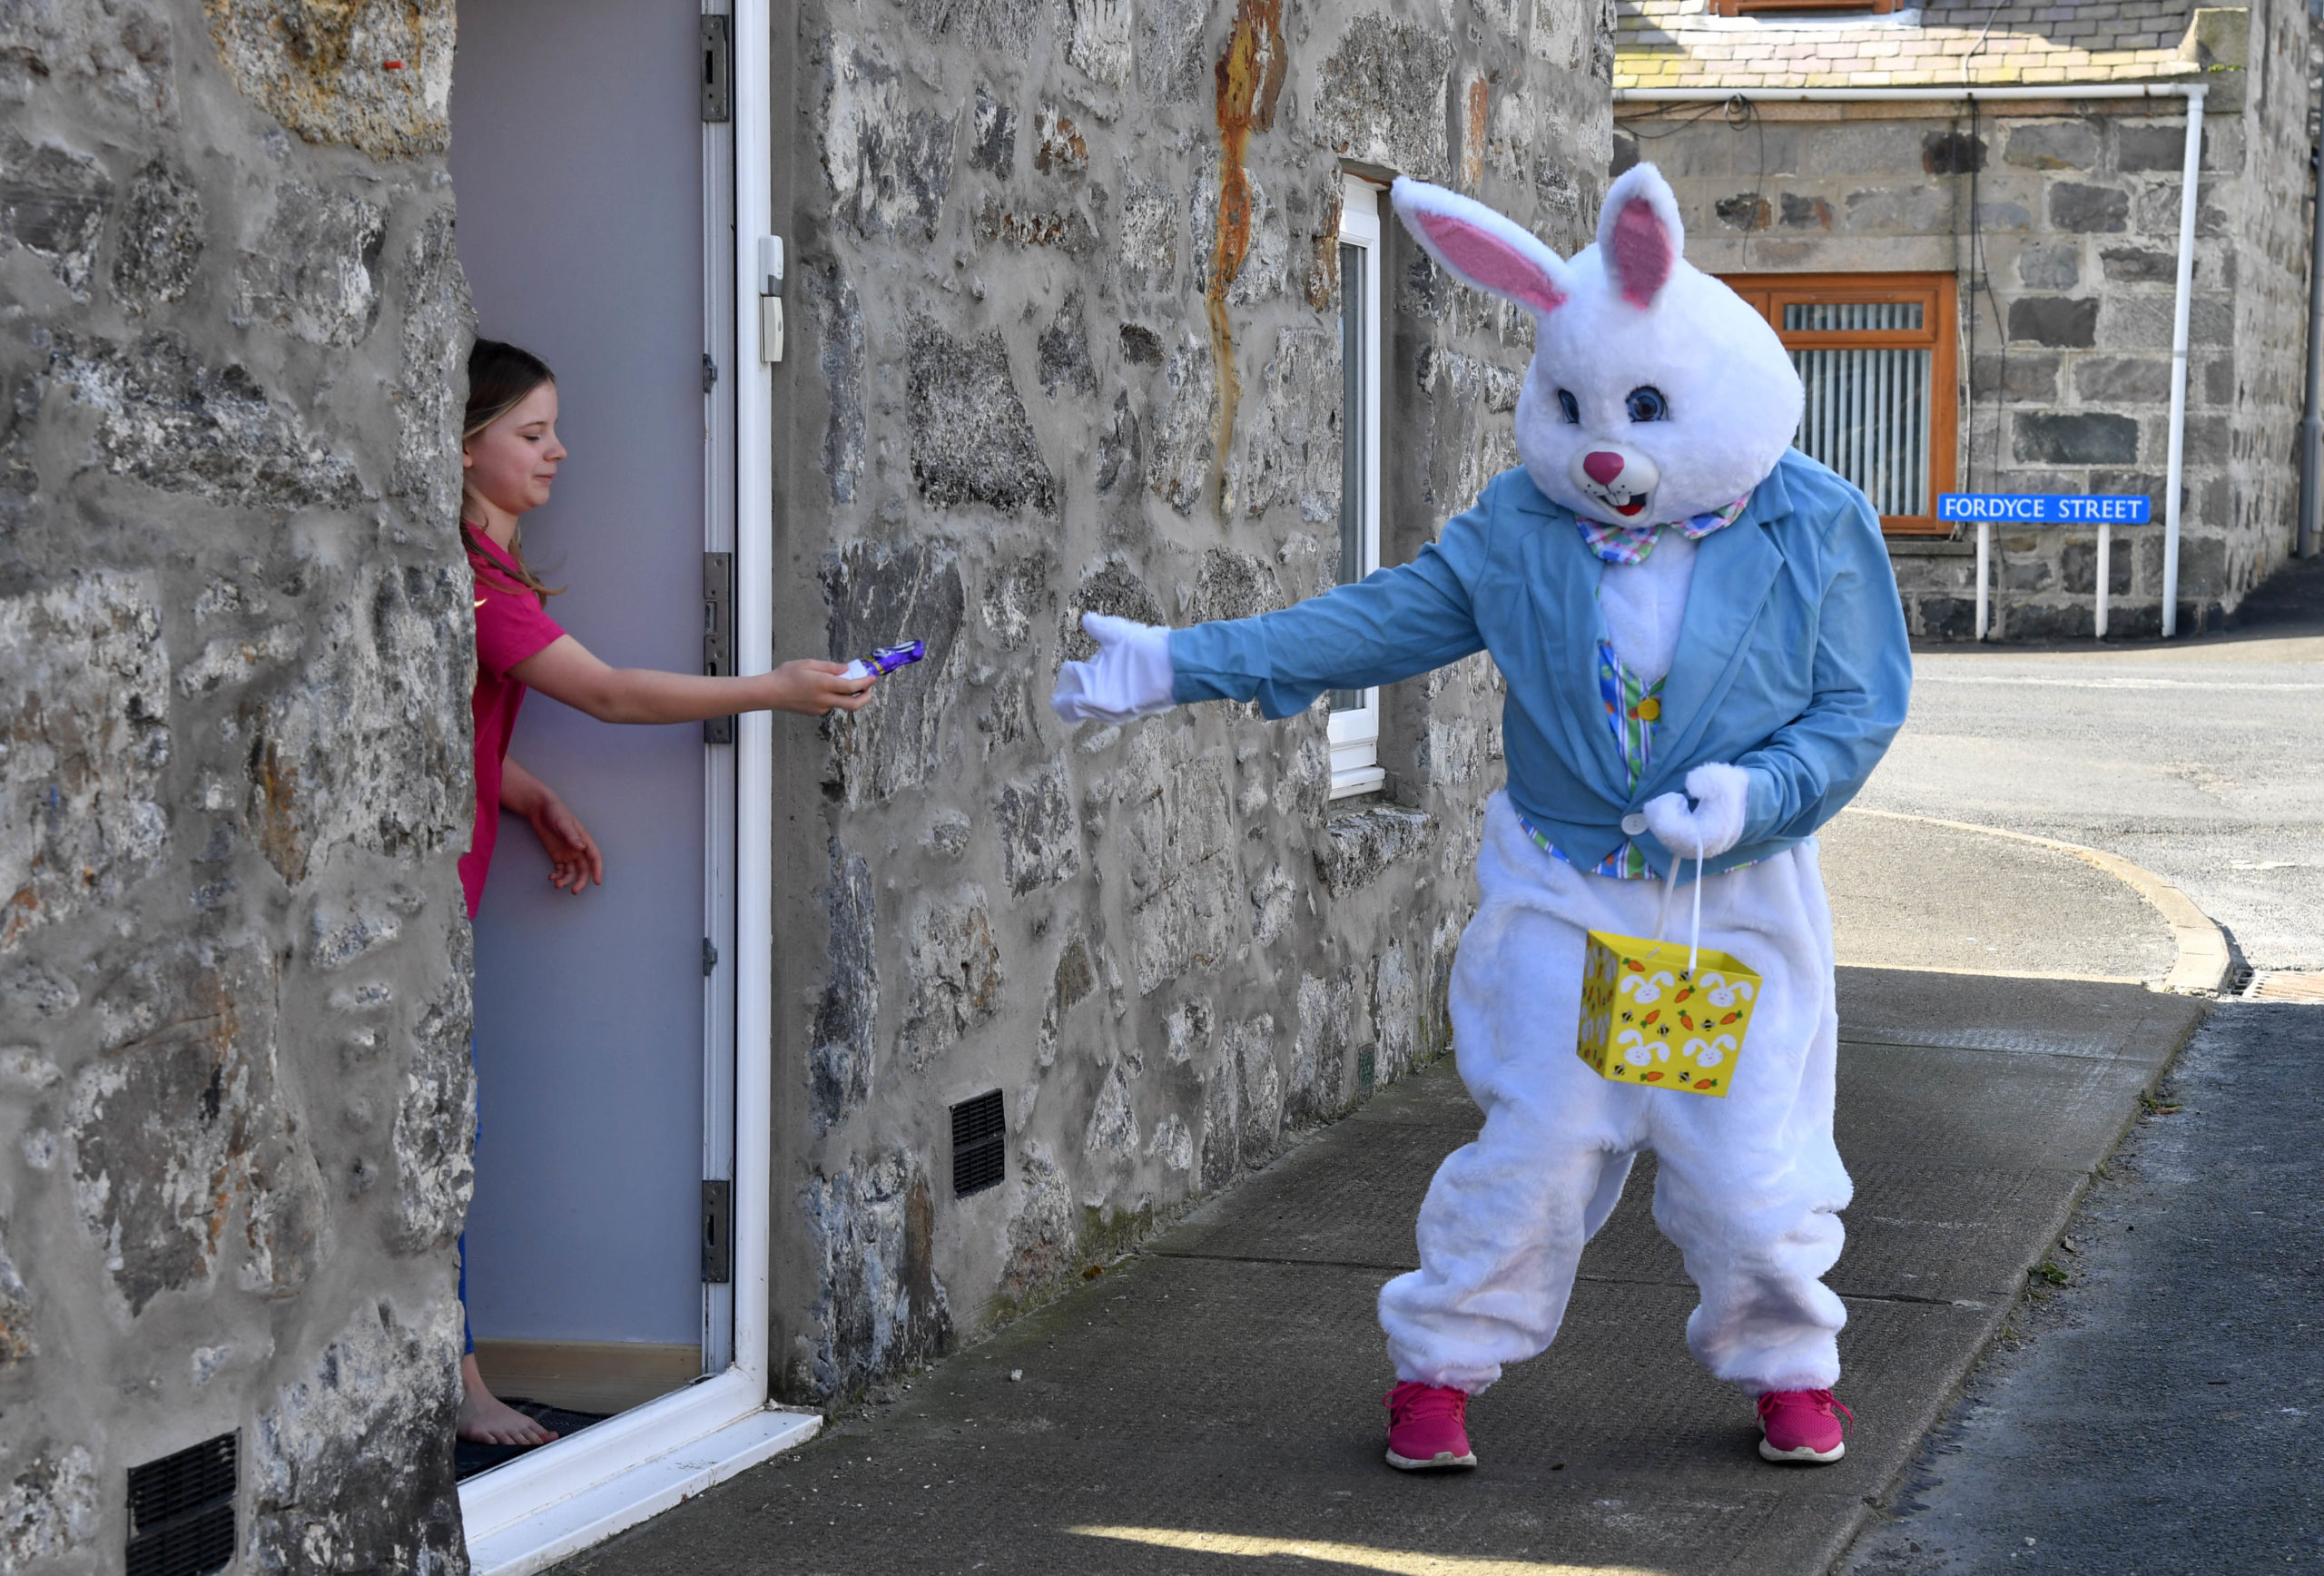 The Easter Bunny hands out chocolate eggs on the streets of Rosehearty.